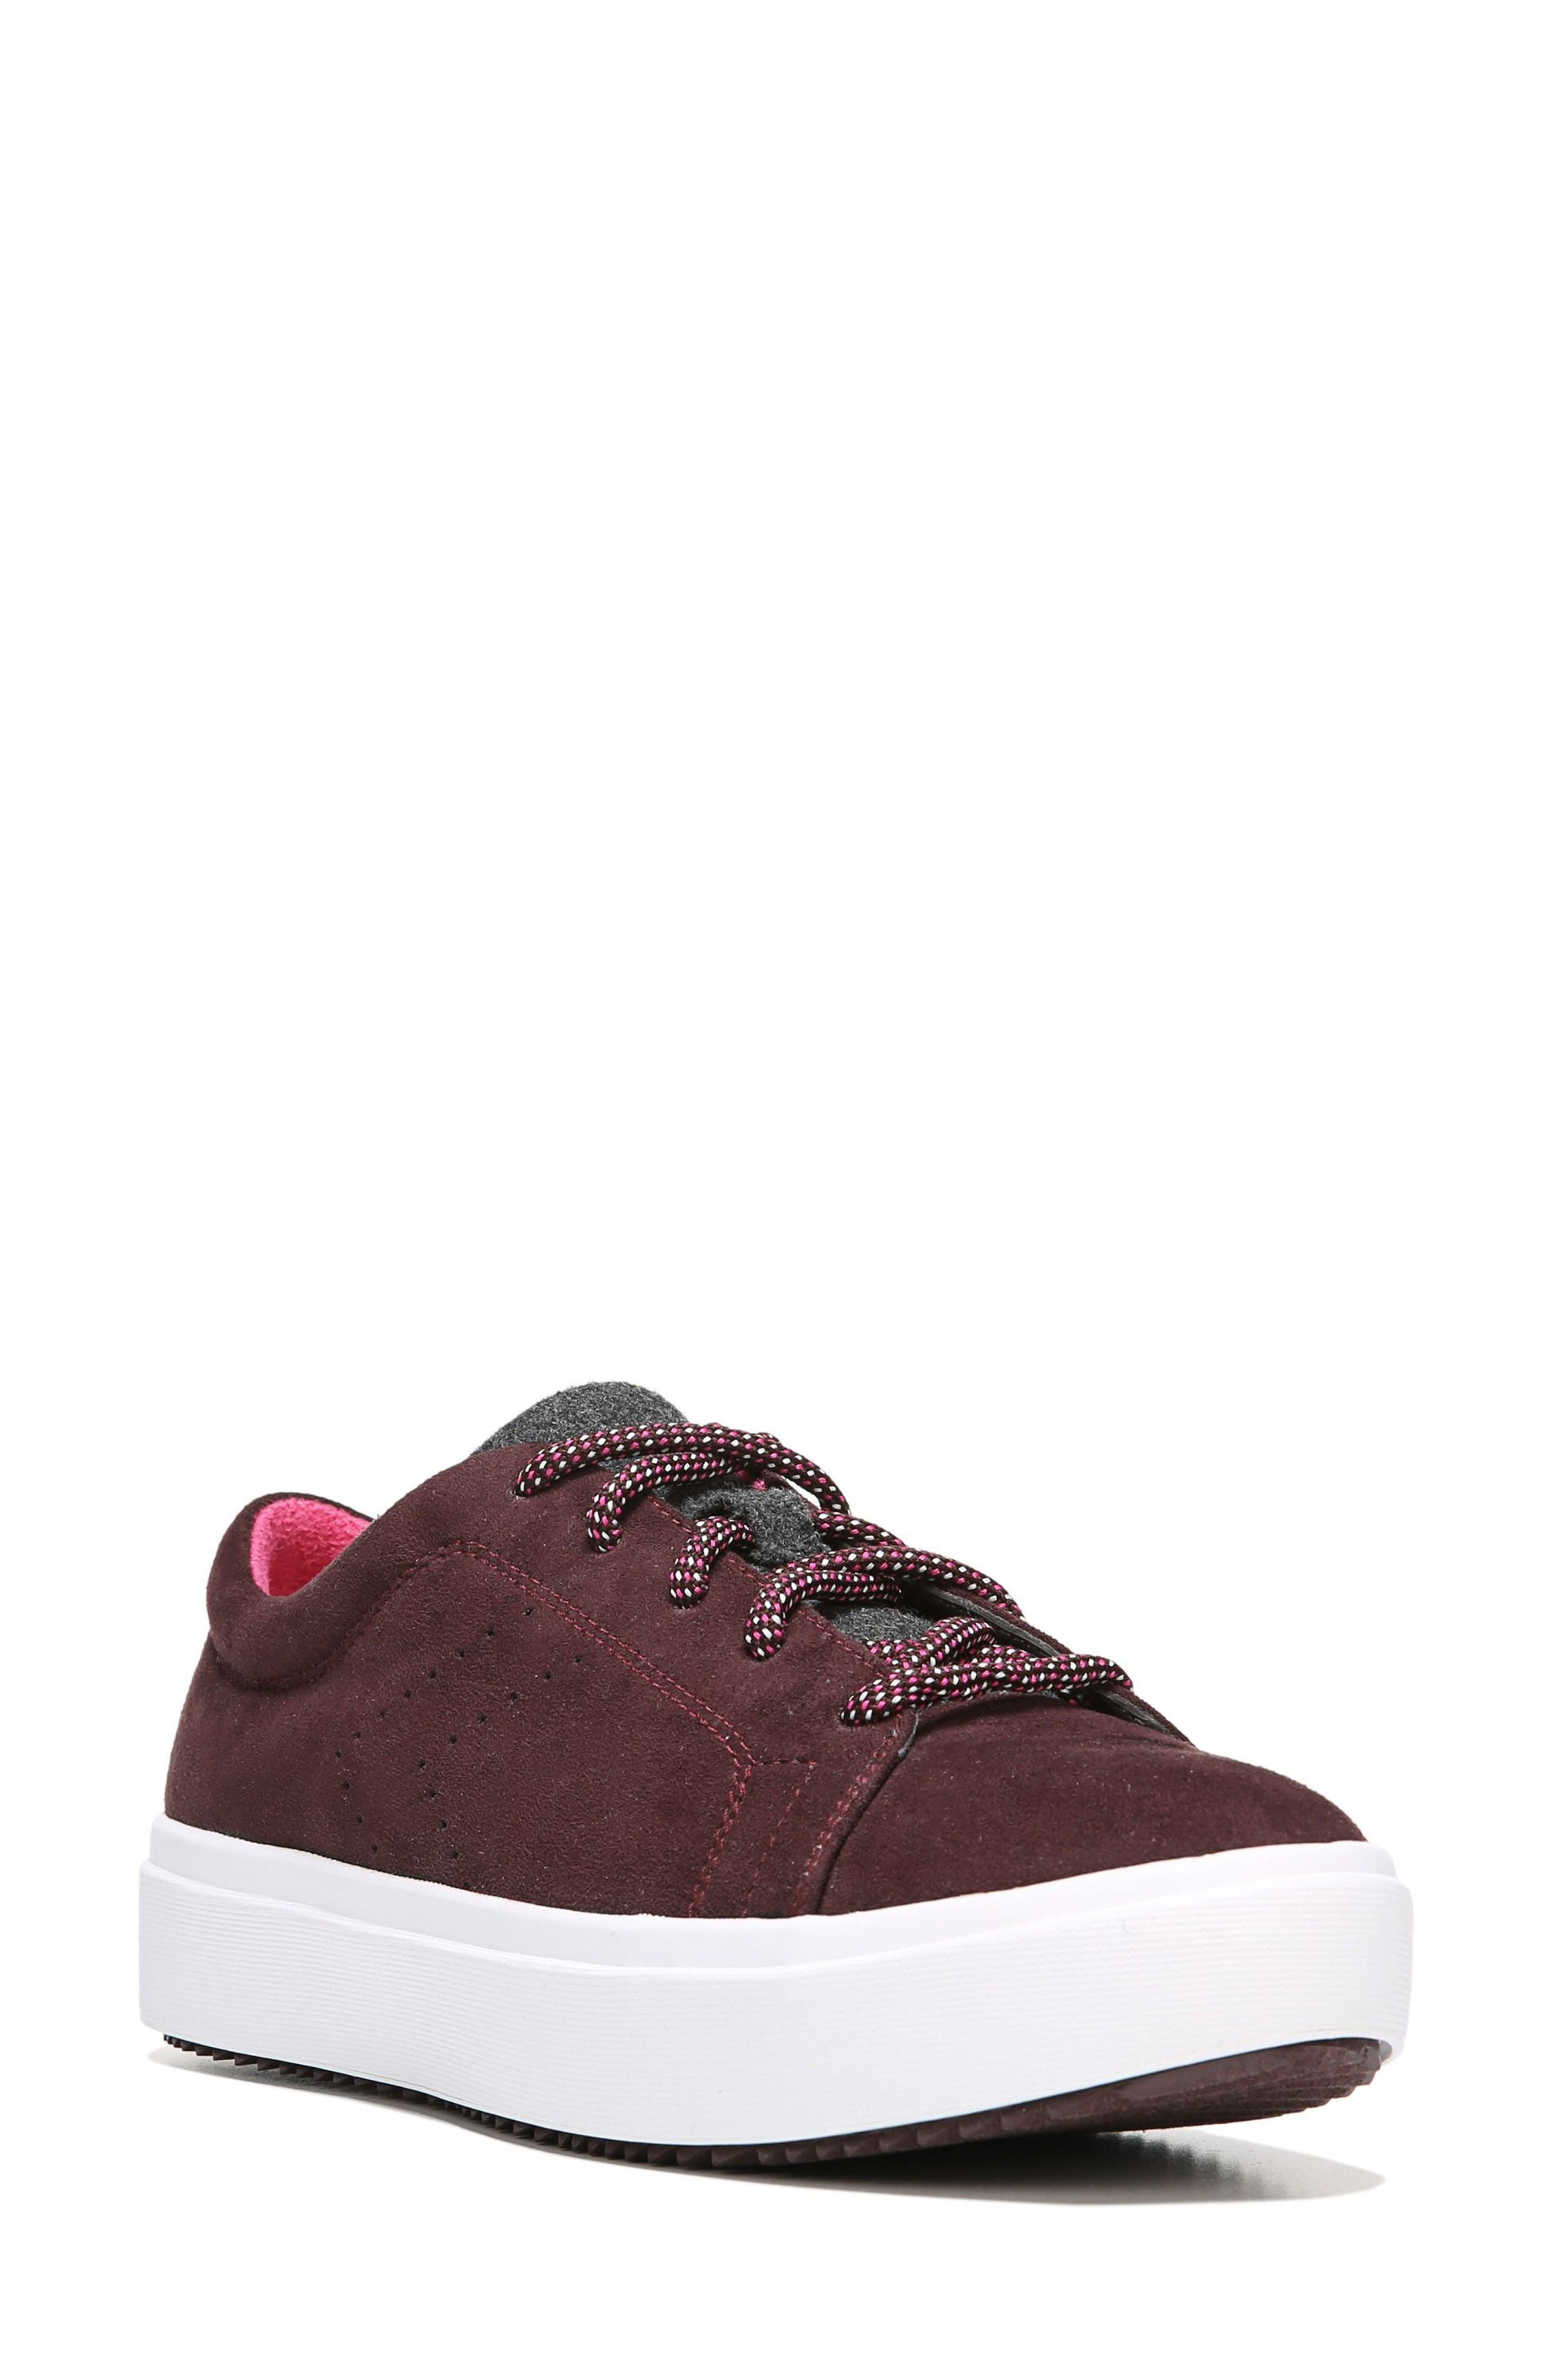 Wander Sneaker,                             Main thumbnail 1, color,                             Merlot Fabric